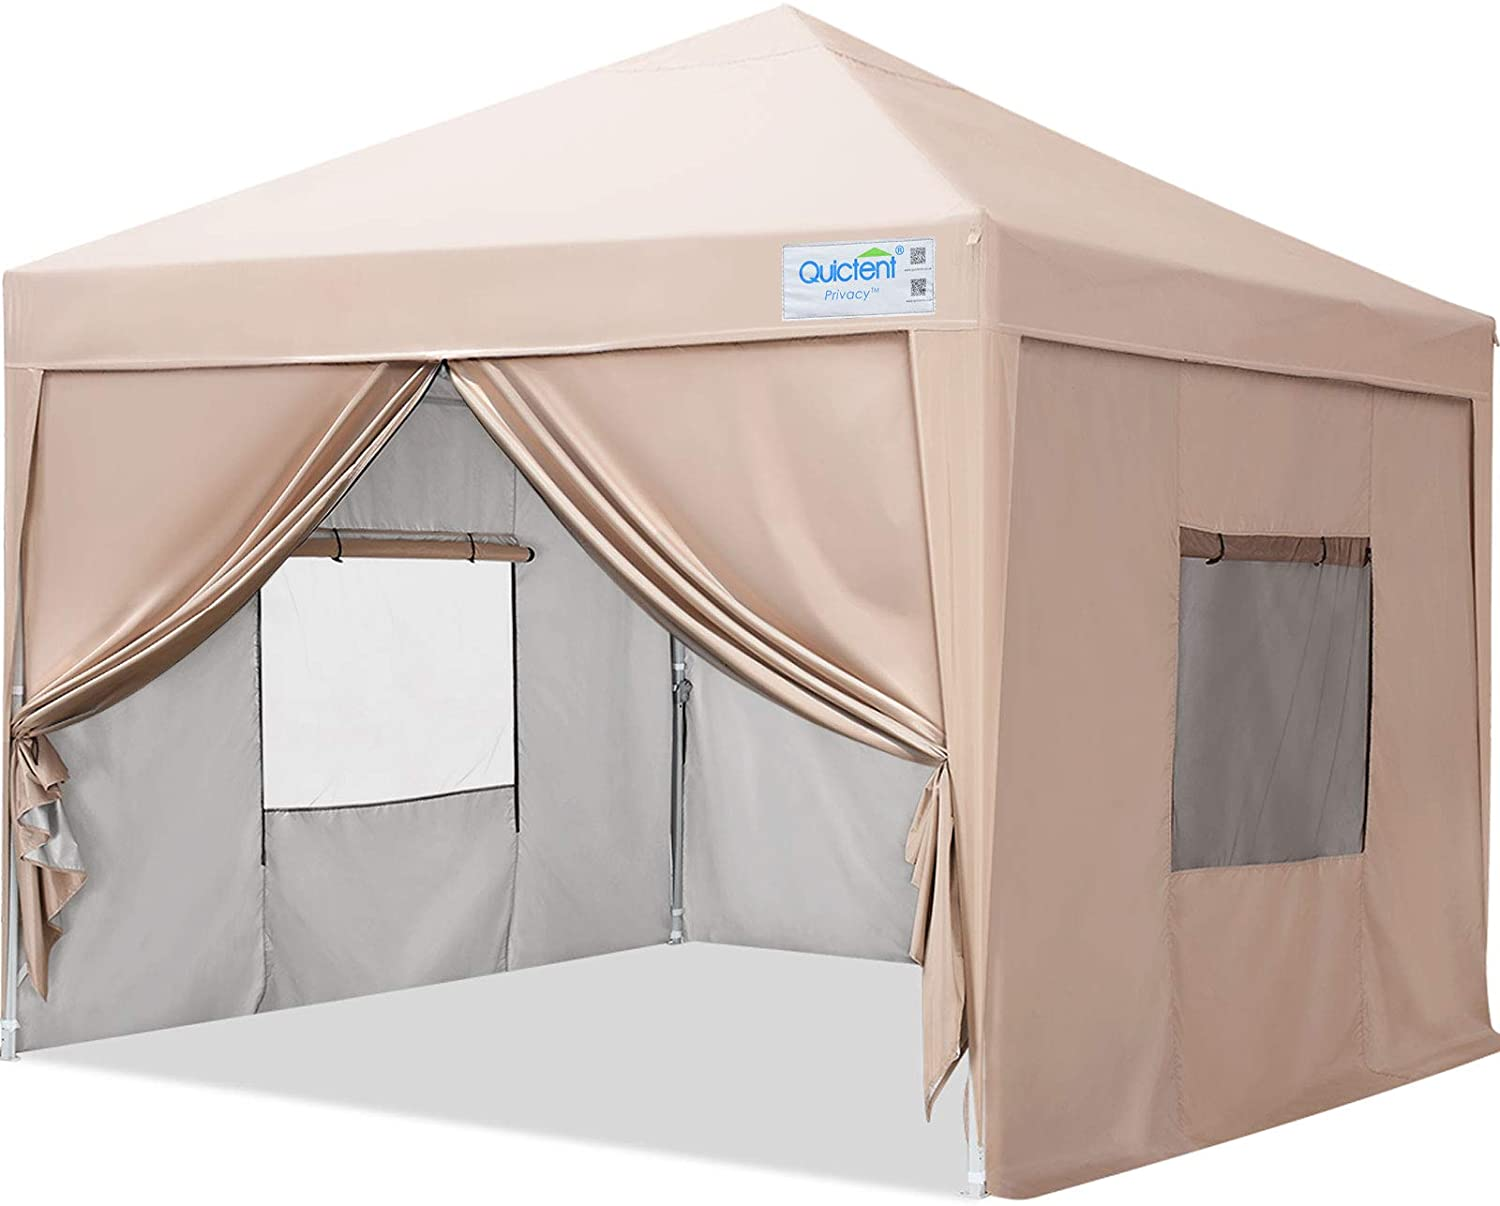 Quictent Privacy Pop-Up Canopy Tent With Sidewalls